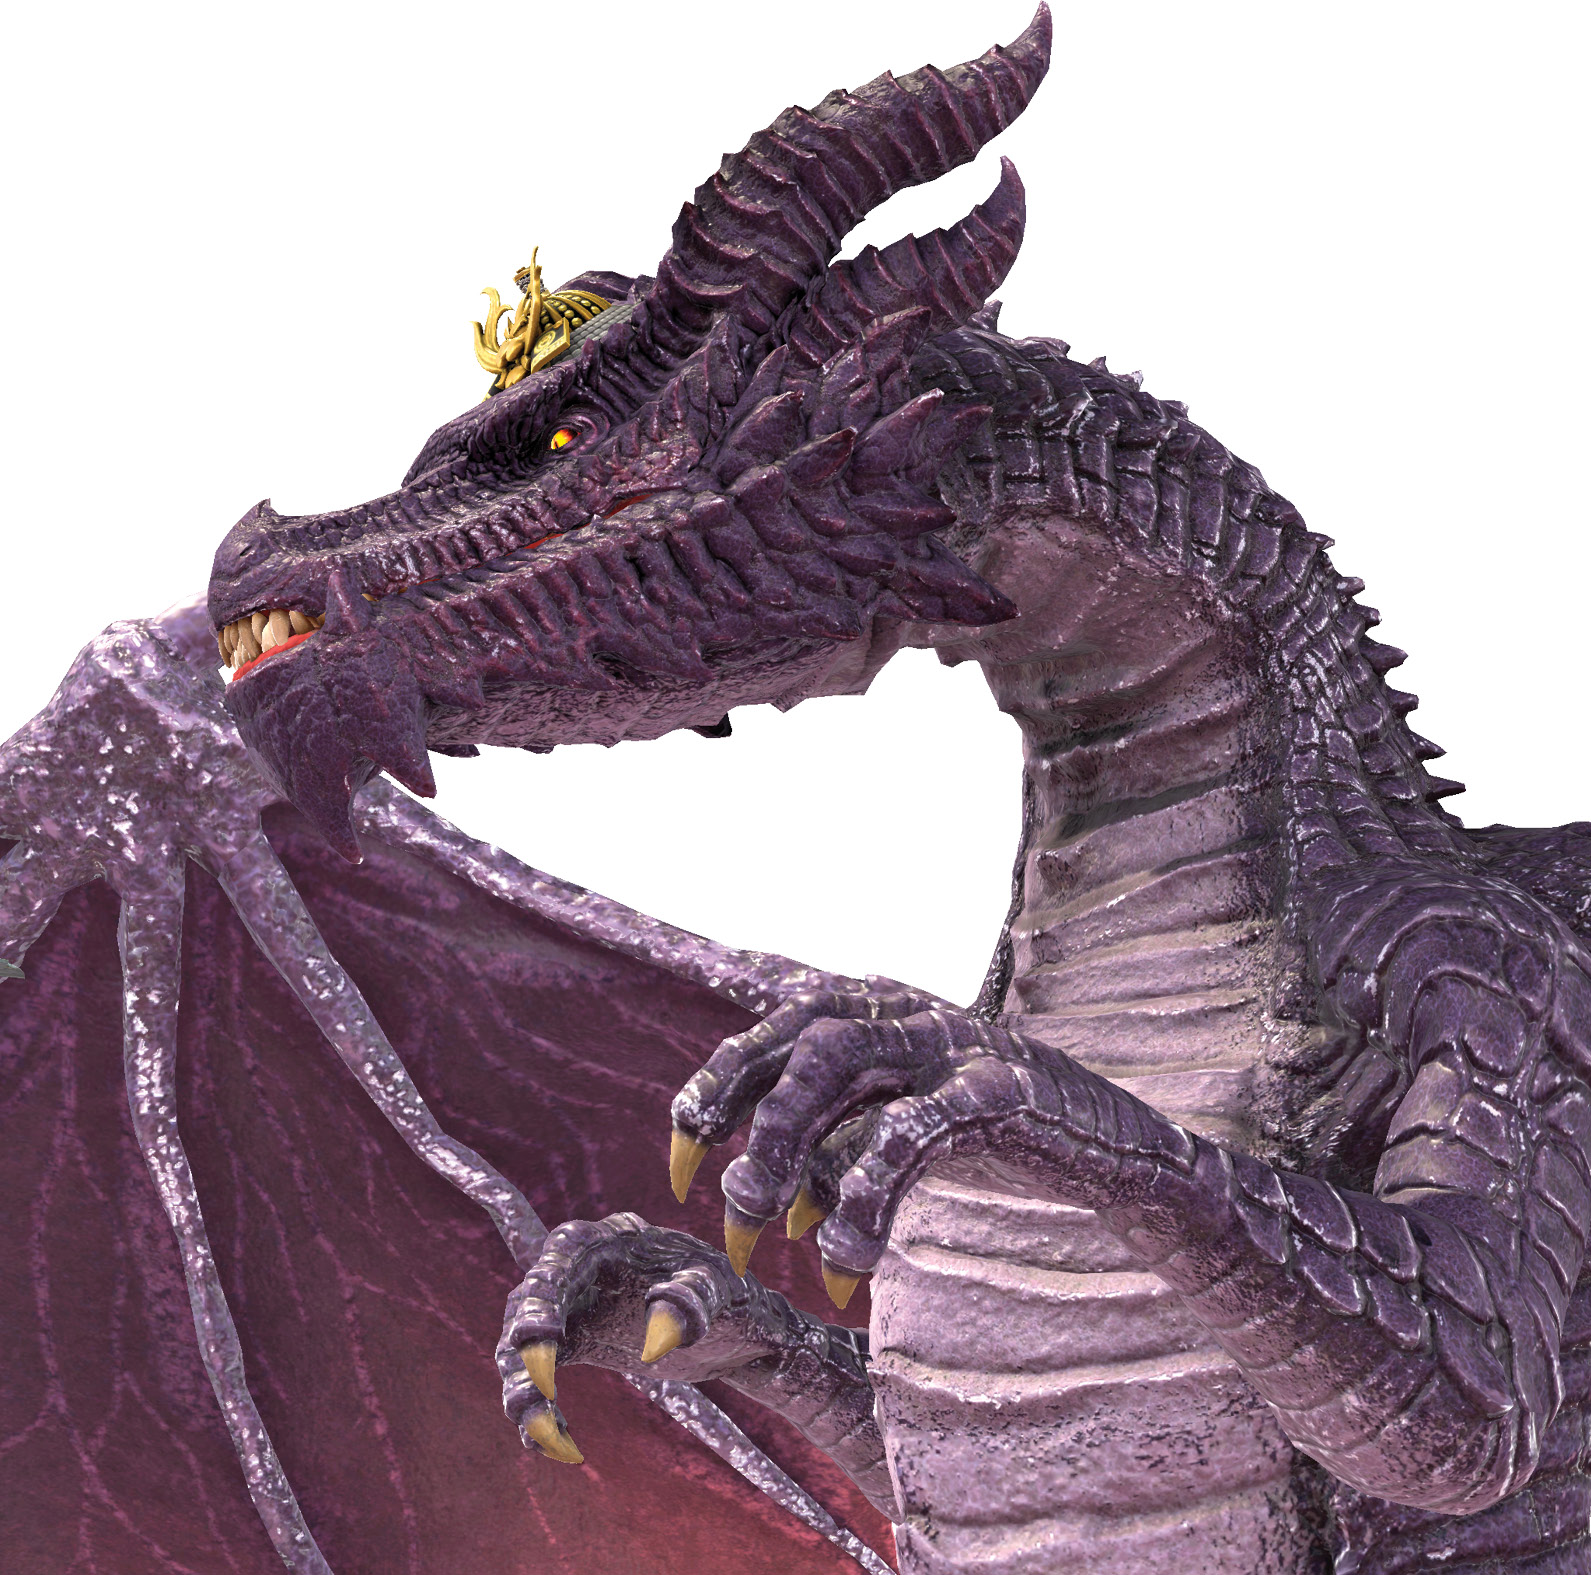 Zappodrac | Drachen Wiki | FANDOM powered by Wikia